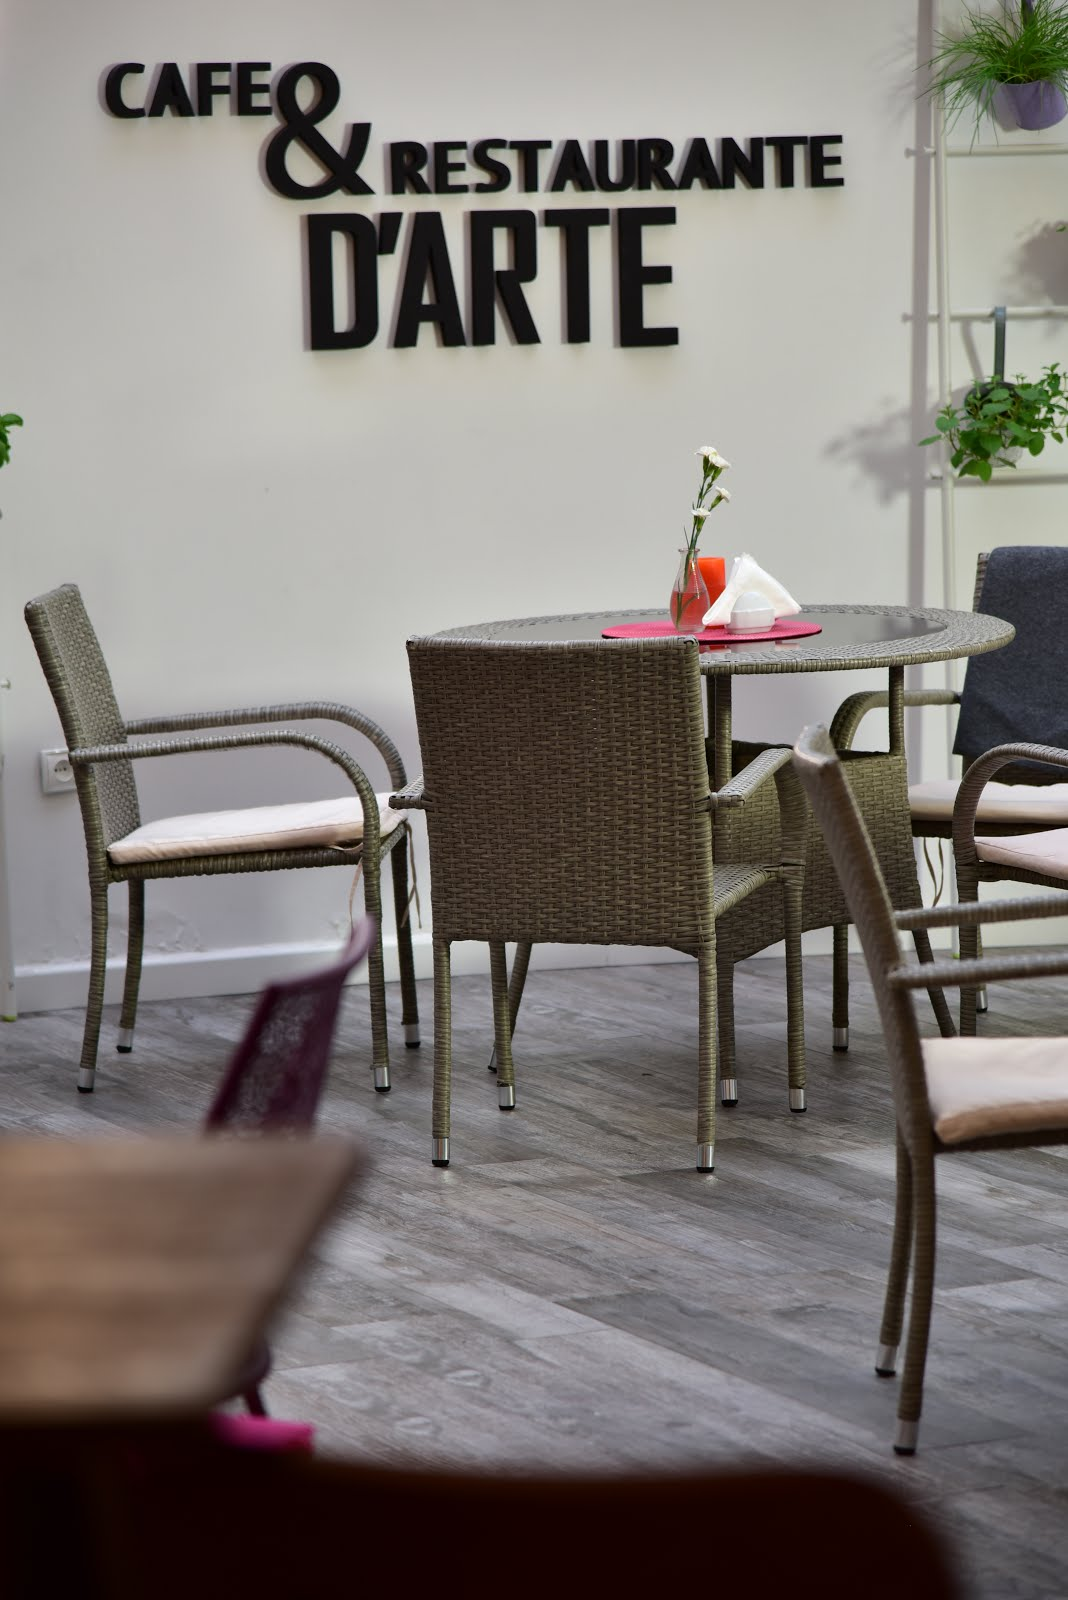 Cafe&restaurante D'arte